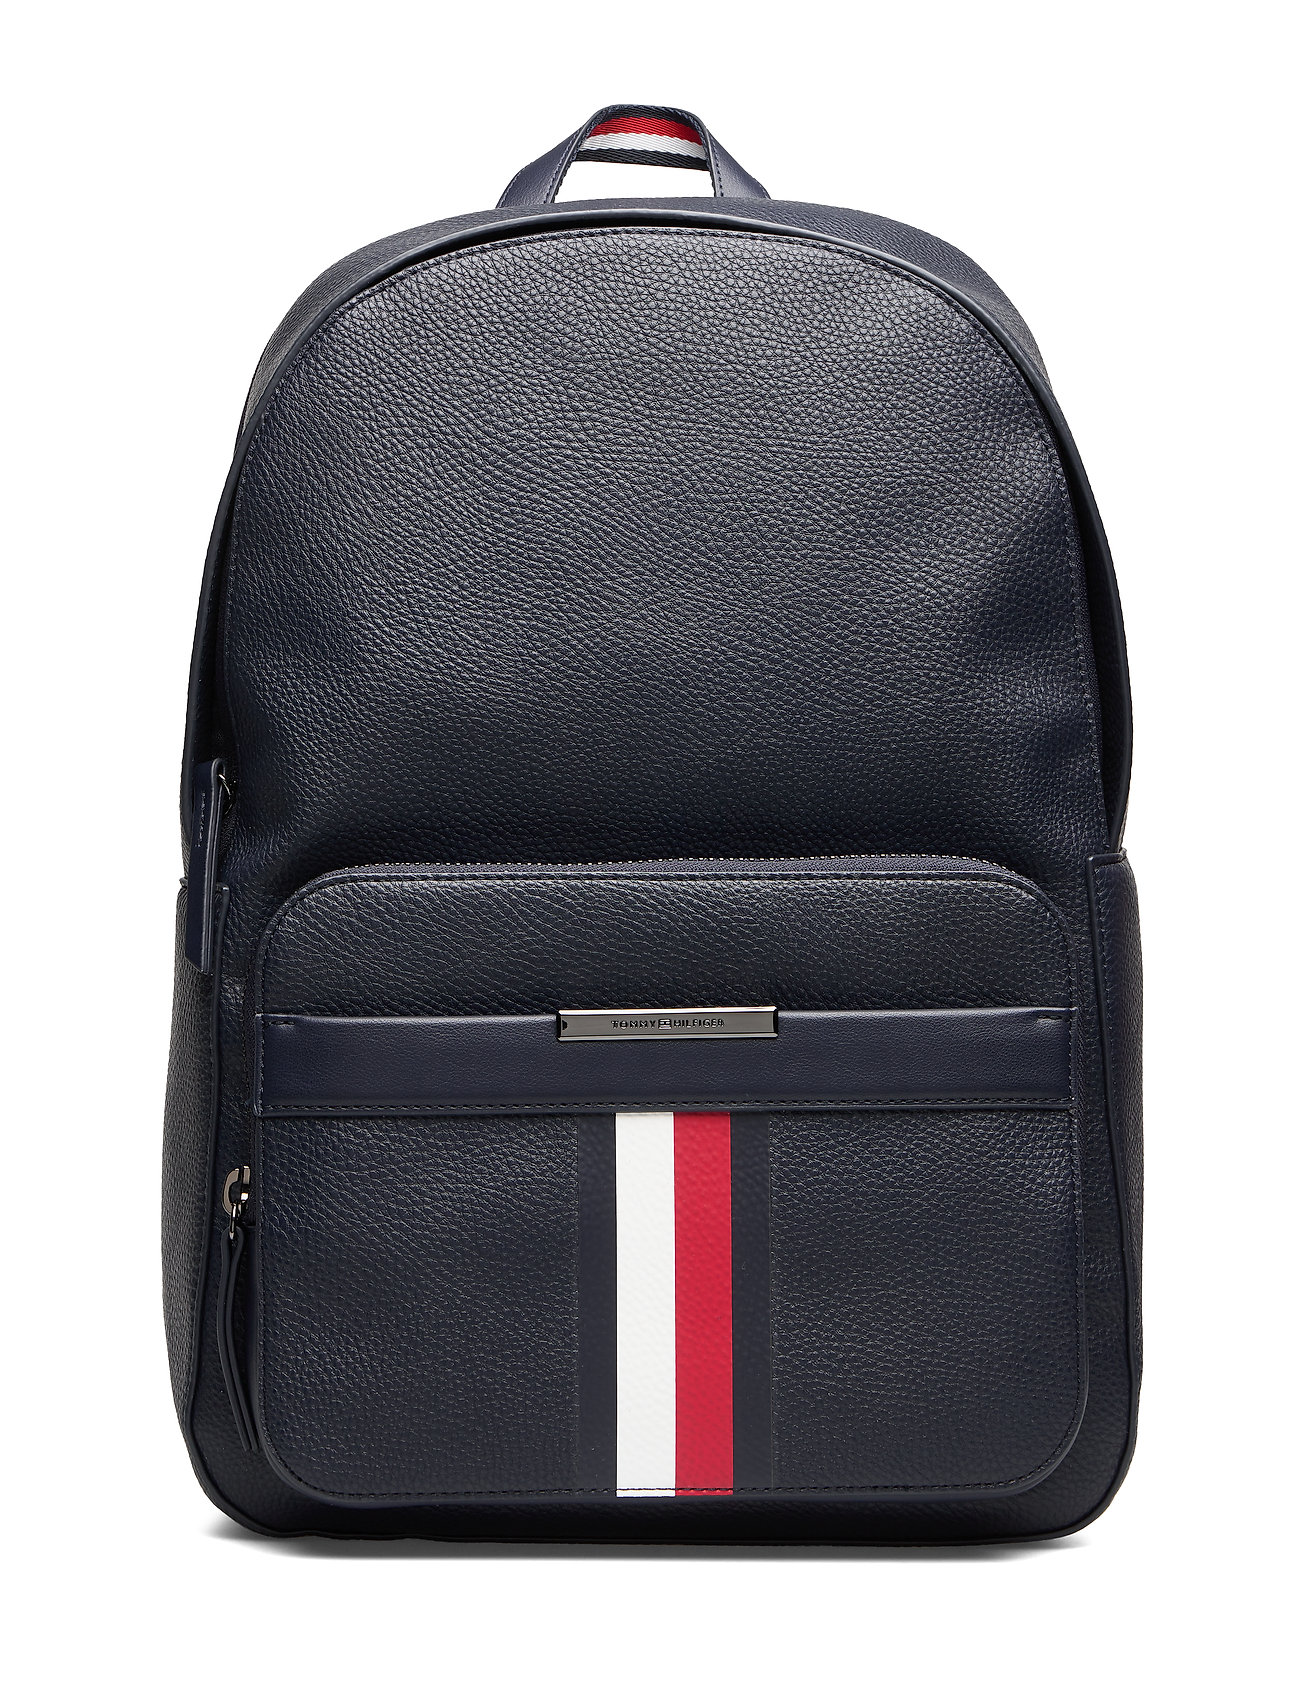 Tommy Hilfiger TH DOWNTOWN CORP BACKPACK - SKY CAPTAIN